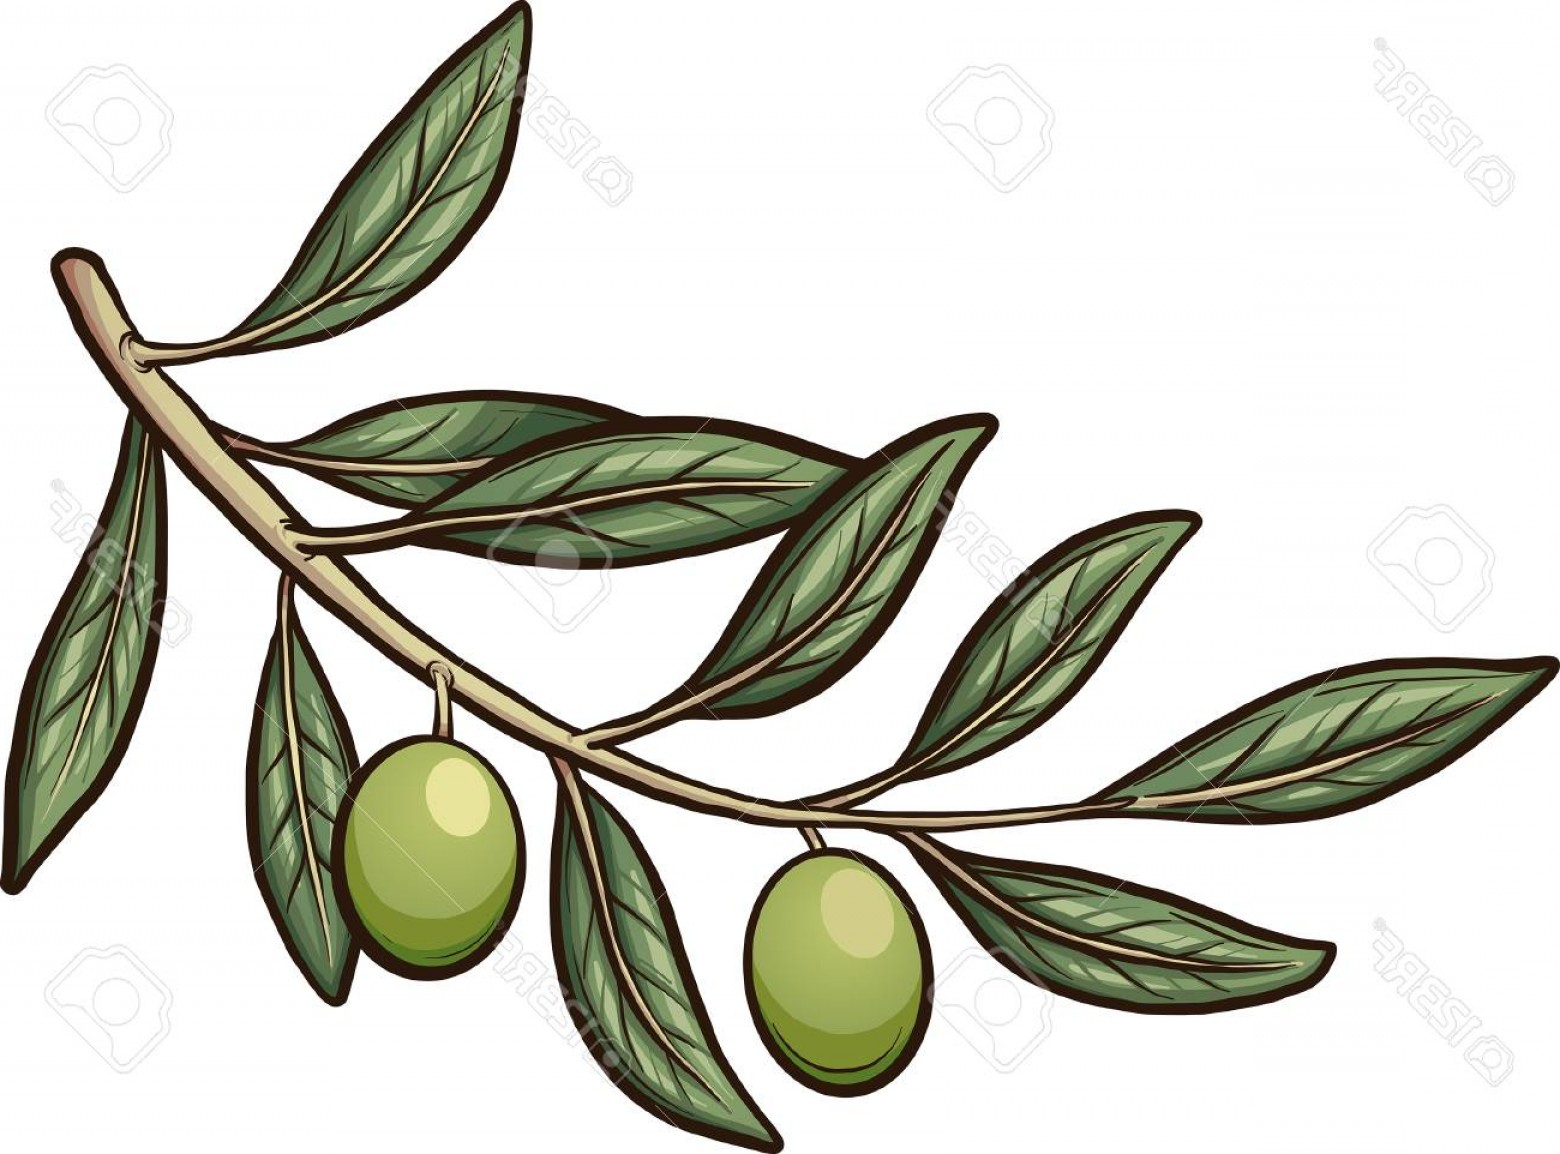 Olive Vector: Photostock Vector Olive Branch With Detachable Olive Vector Clip Art Illustration With Simple Gradients Branch And Oli